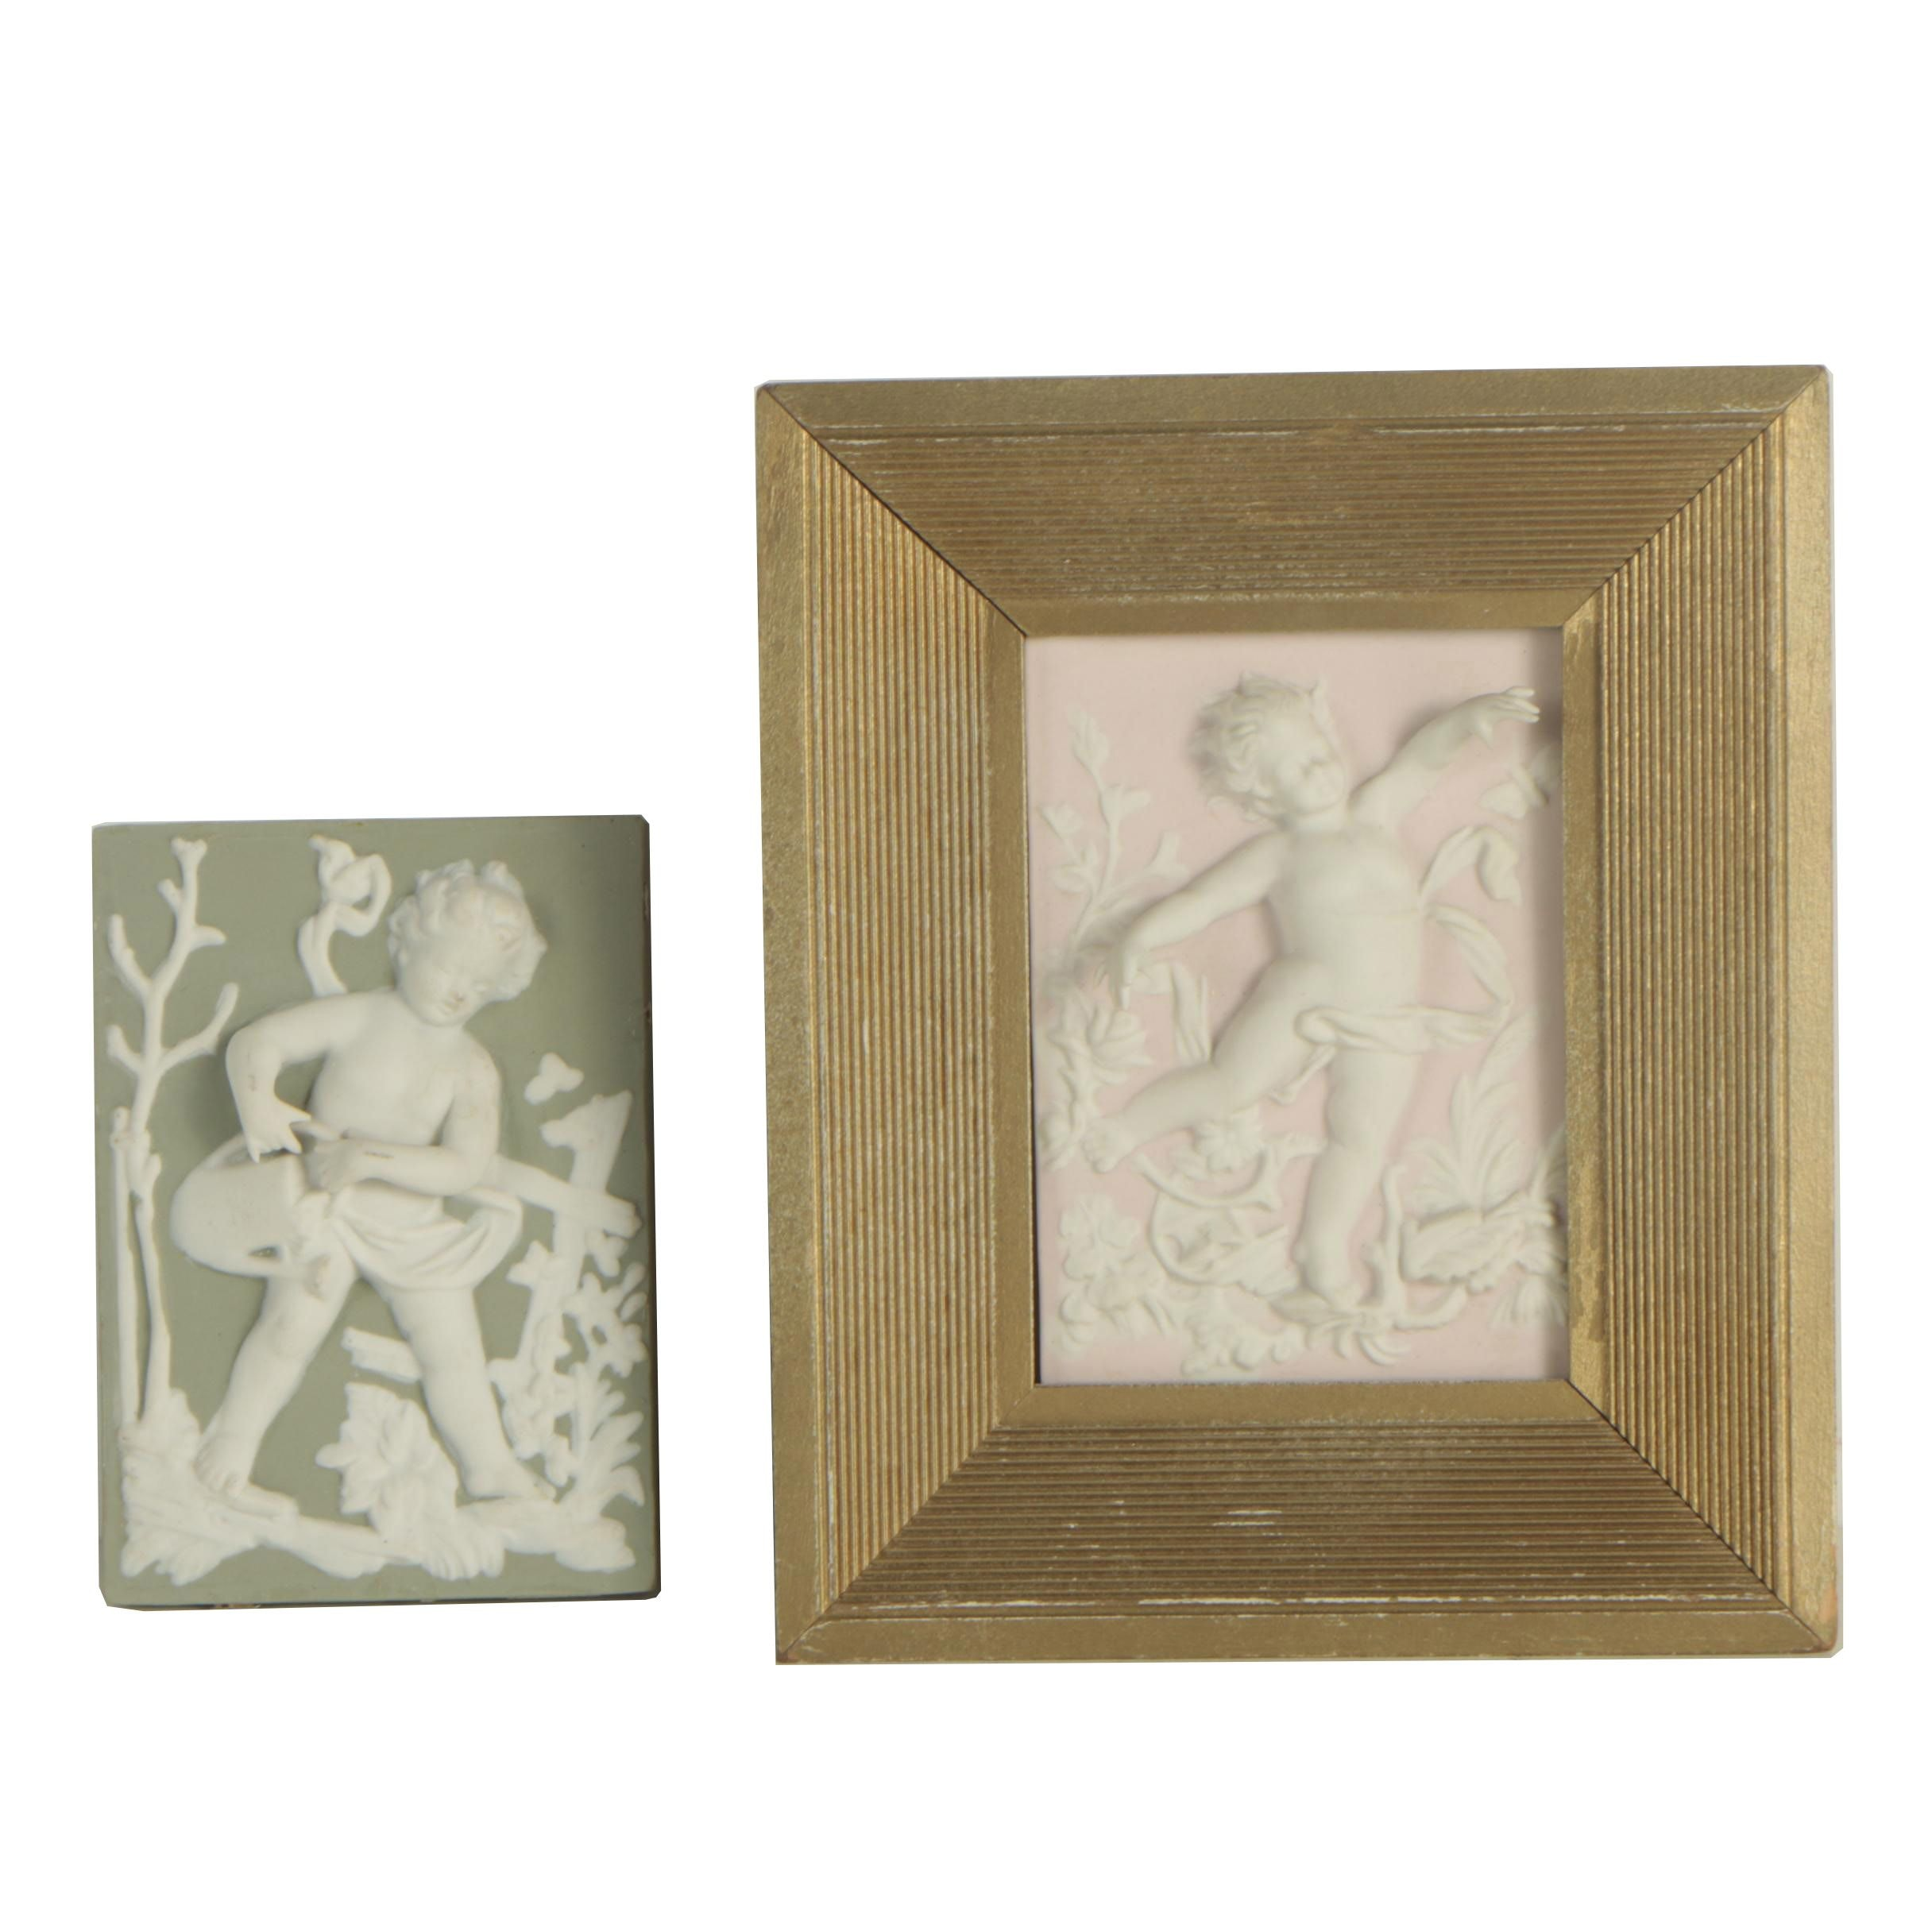 Arnart Porcelain Bas-Relief Wall Decor